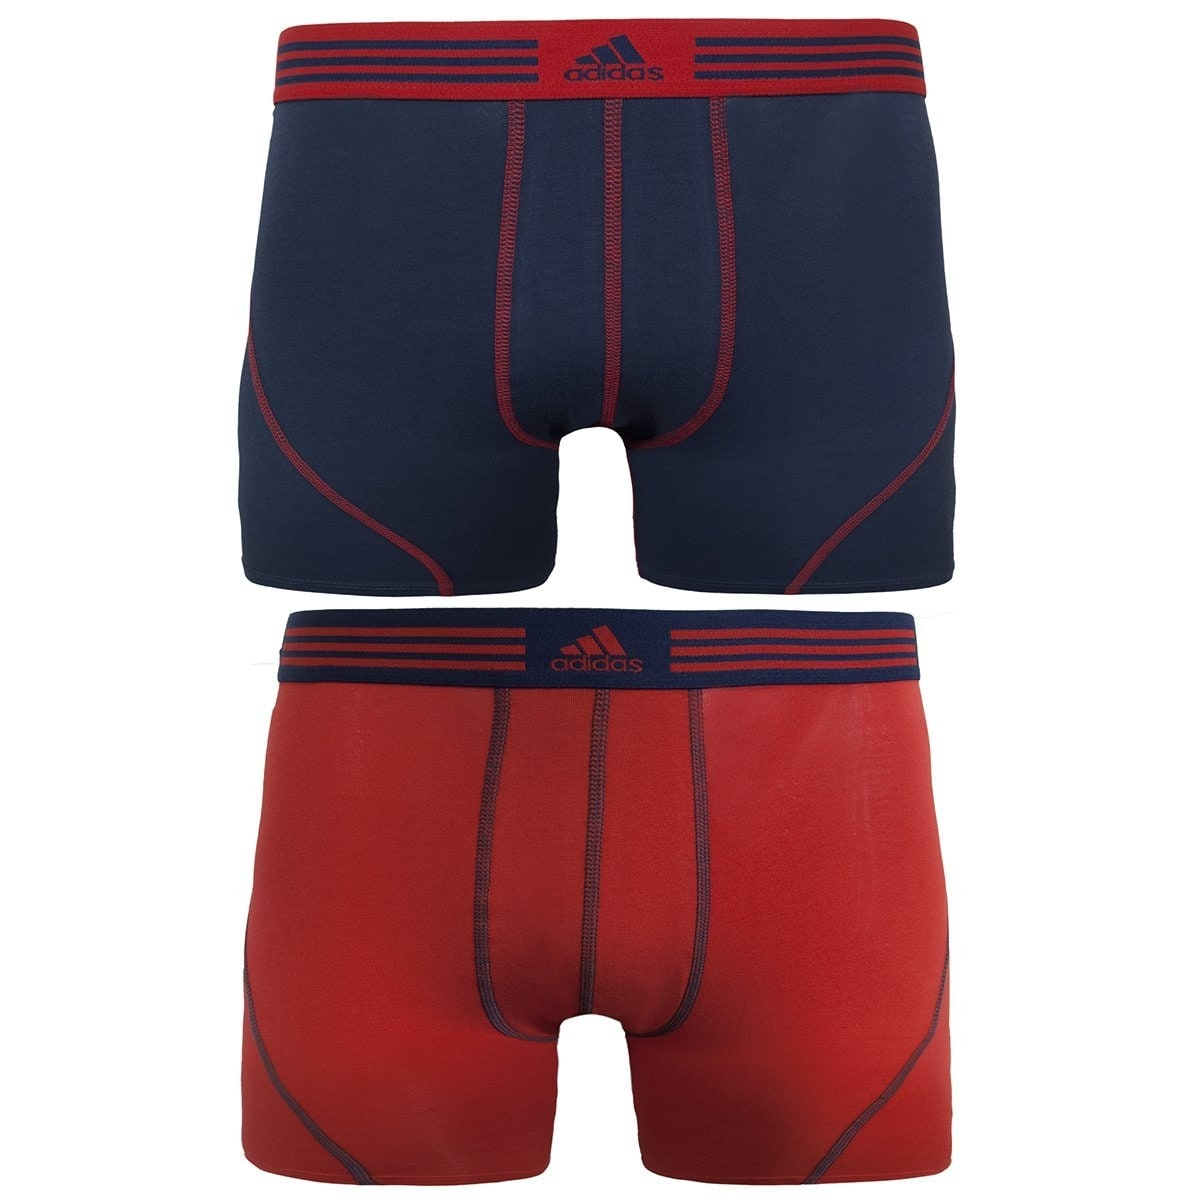 bb05763e7 Shop Adidas Men s Athletic Cotton Stretch Trunk Underwear (2-Pack) - Free  Shipping On Orders Over  45 - Overstock - 18758220